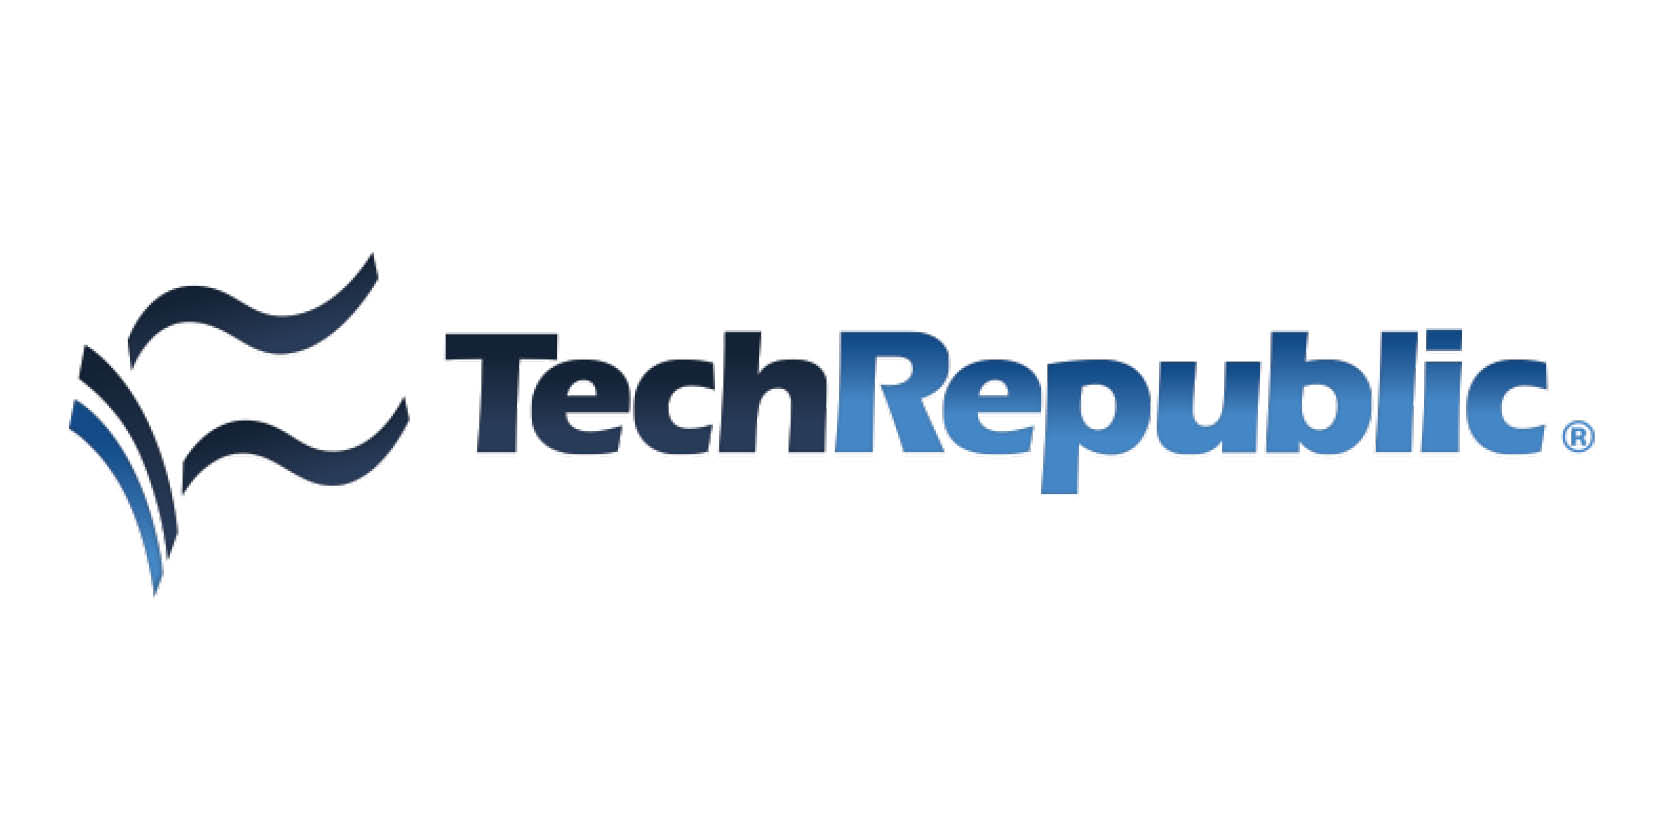 TechRepublic: How to mitigate ransomware, DDoS attacks, and other cyber extortion threats